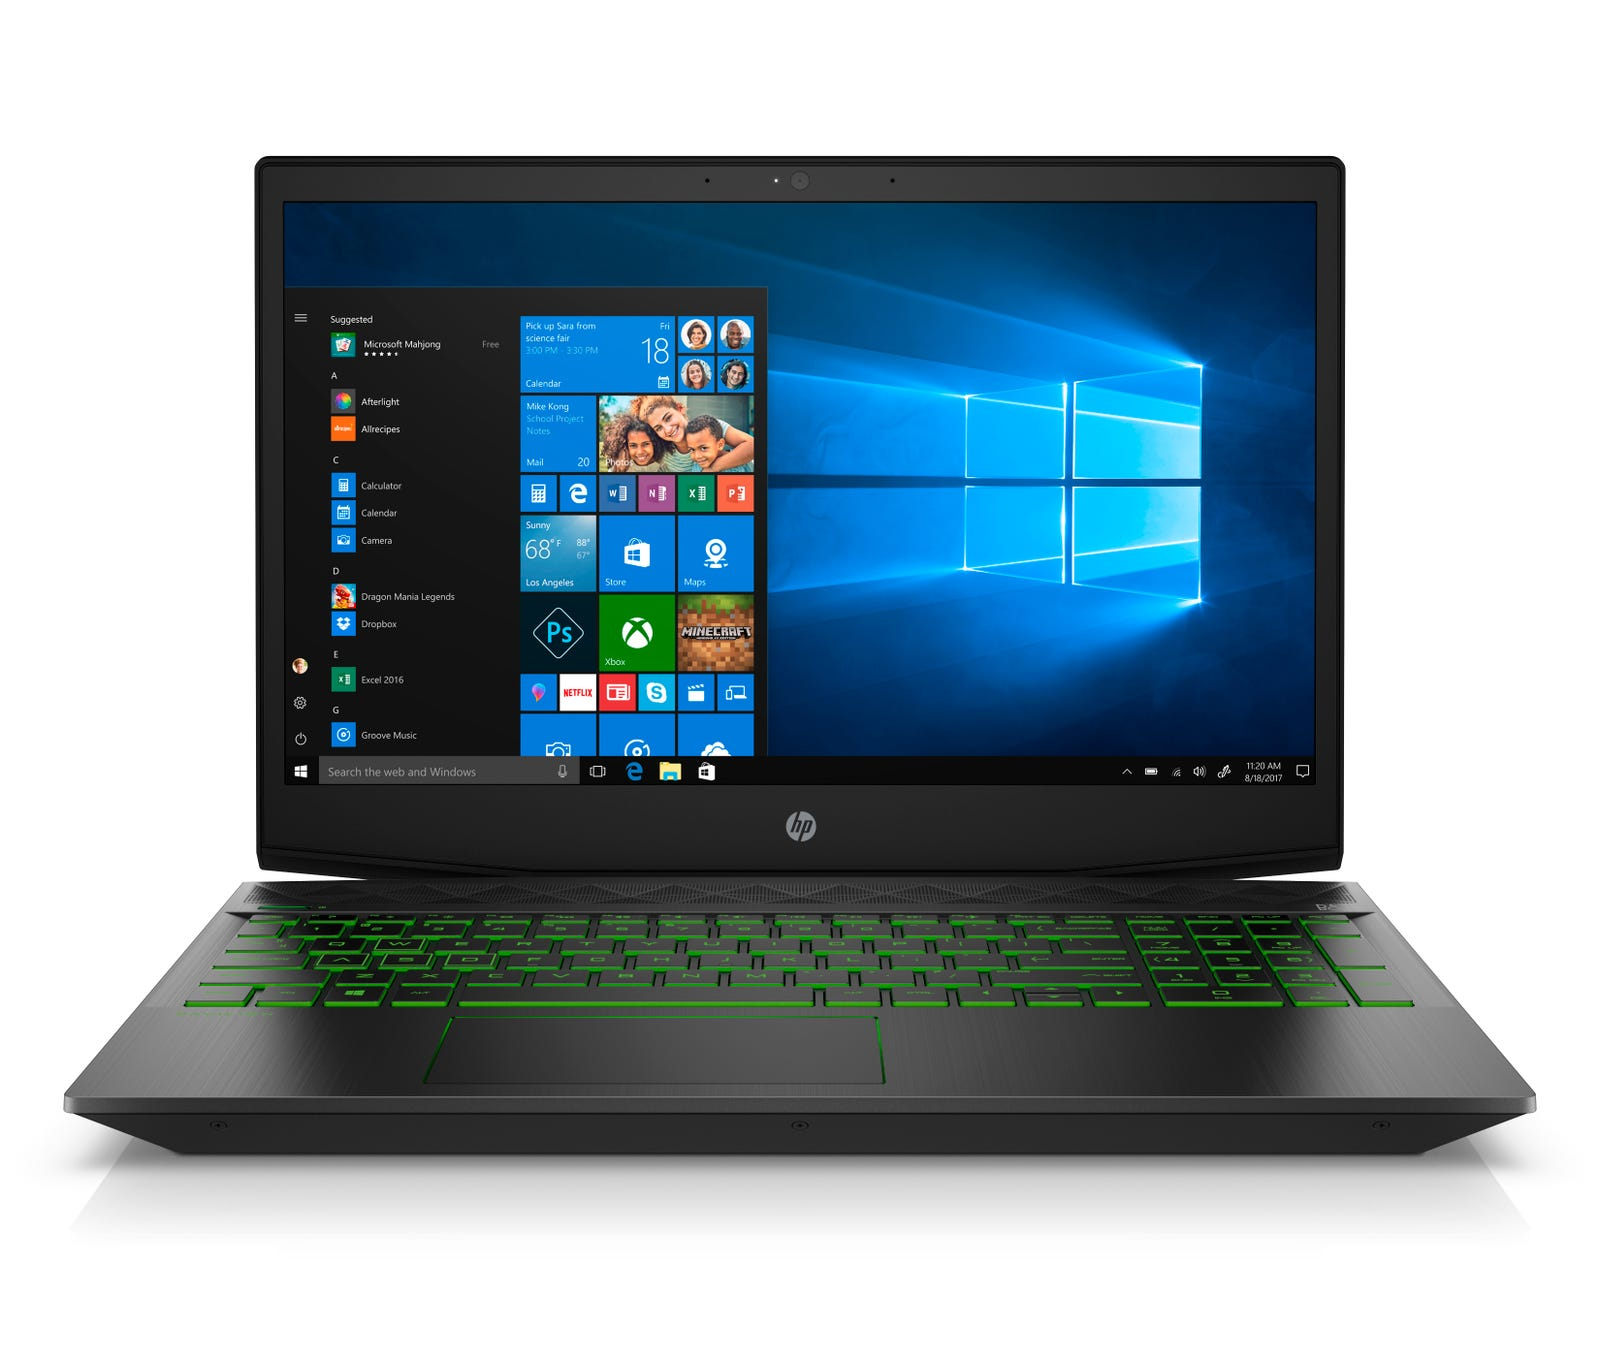 Unlike more expensive gaming laptops, you can't adjust the keyboard's back light. Instead, you'll be able to choose from three colors: green, white, or purple.